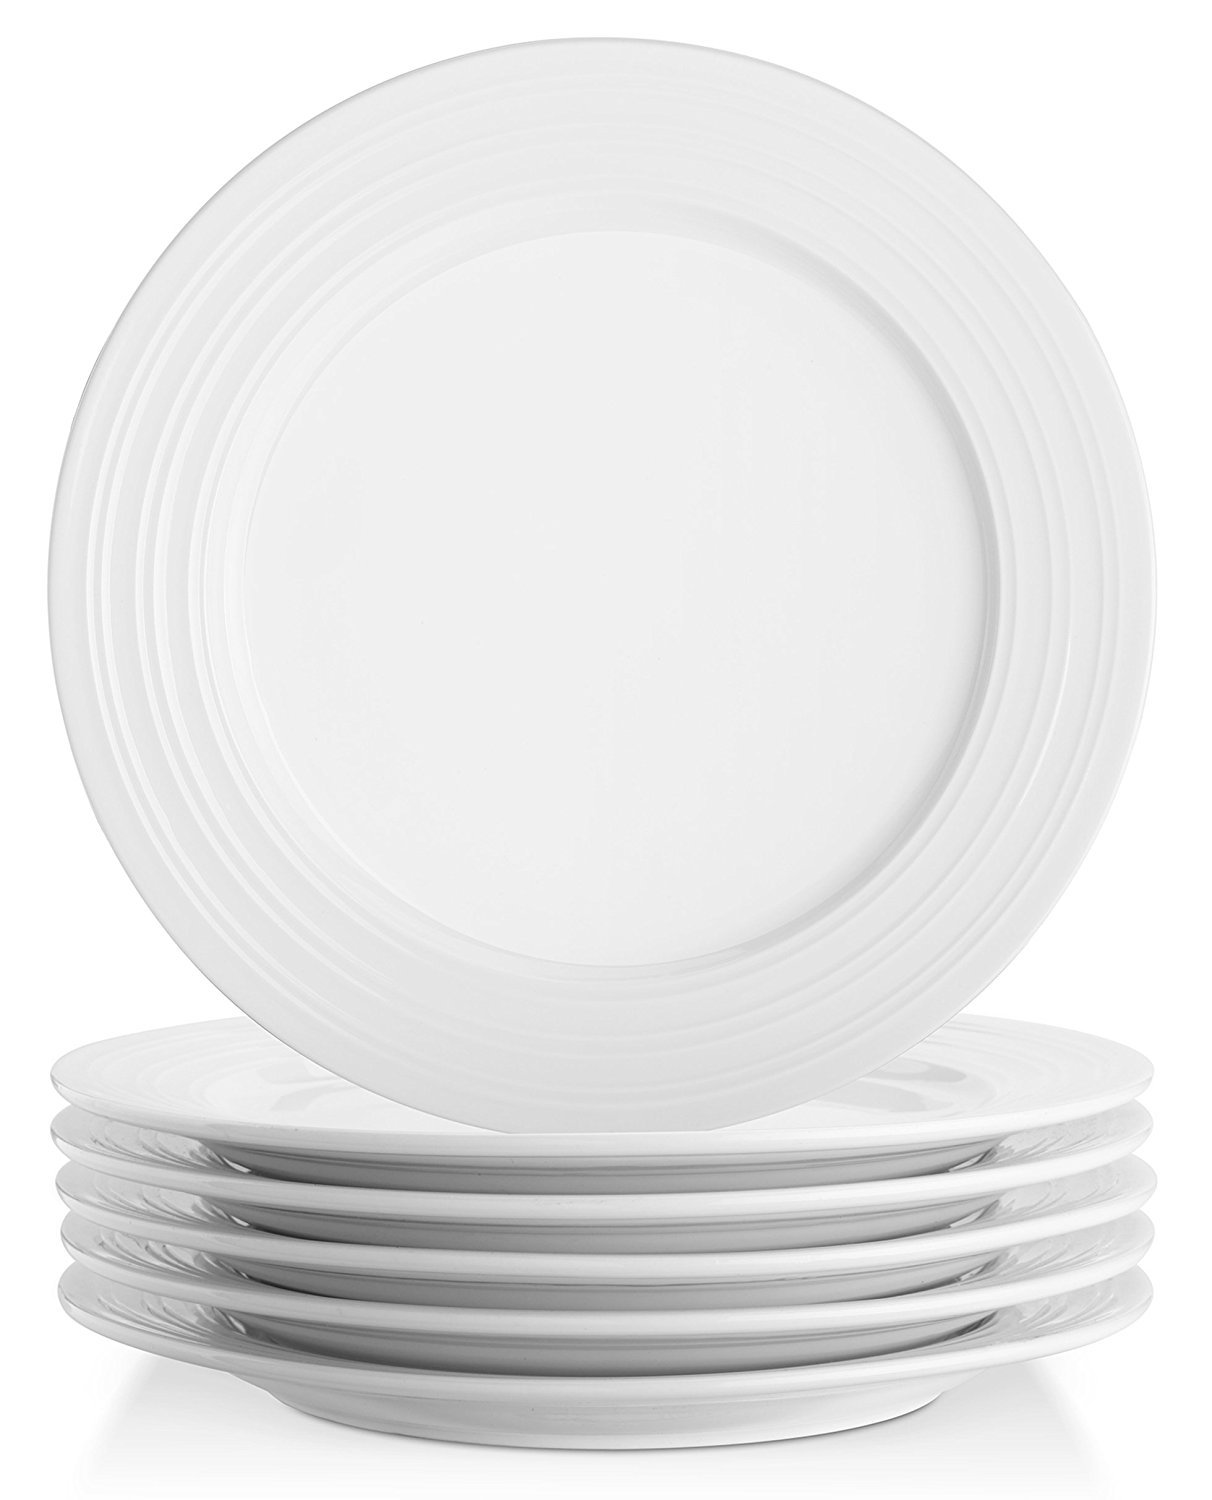 Lifver 10-inch Porcelain Dinner Plates/Serving Platters with Embossed Ring Rim, Round&Elegant White, Set of 6 by Lifver